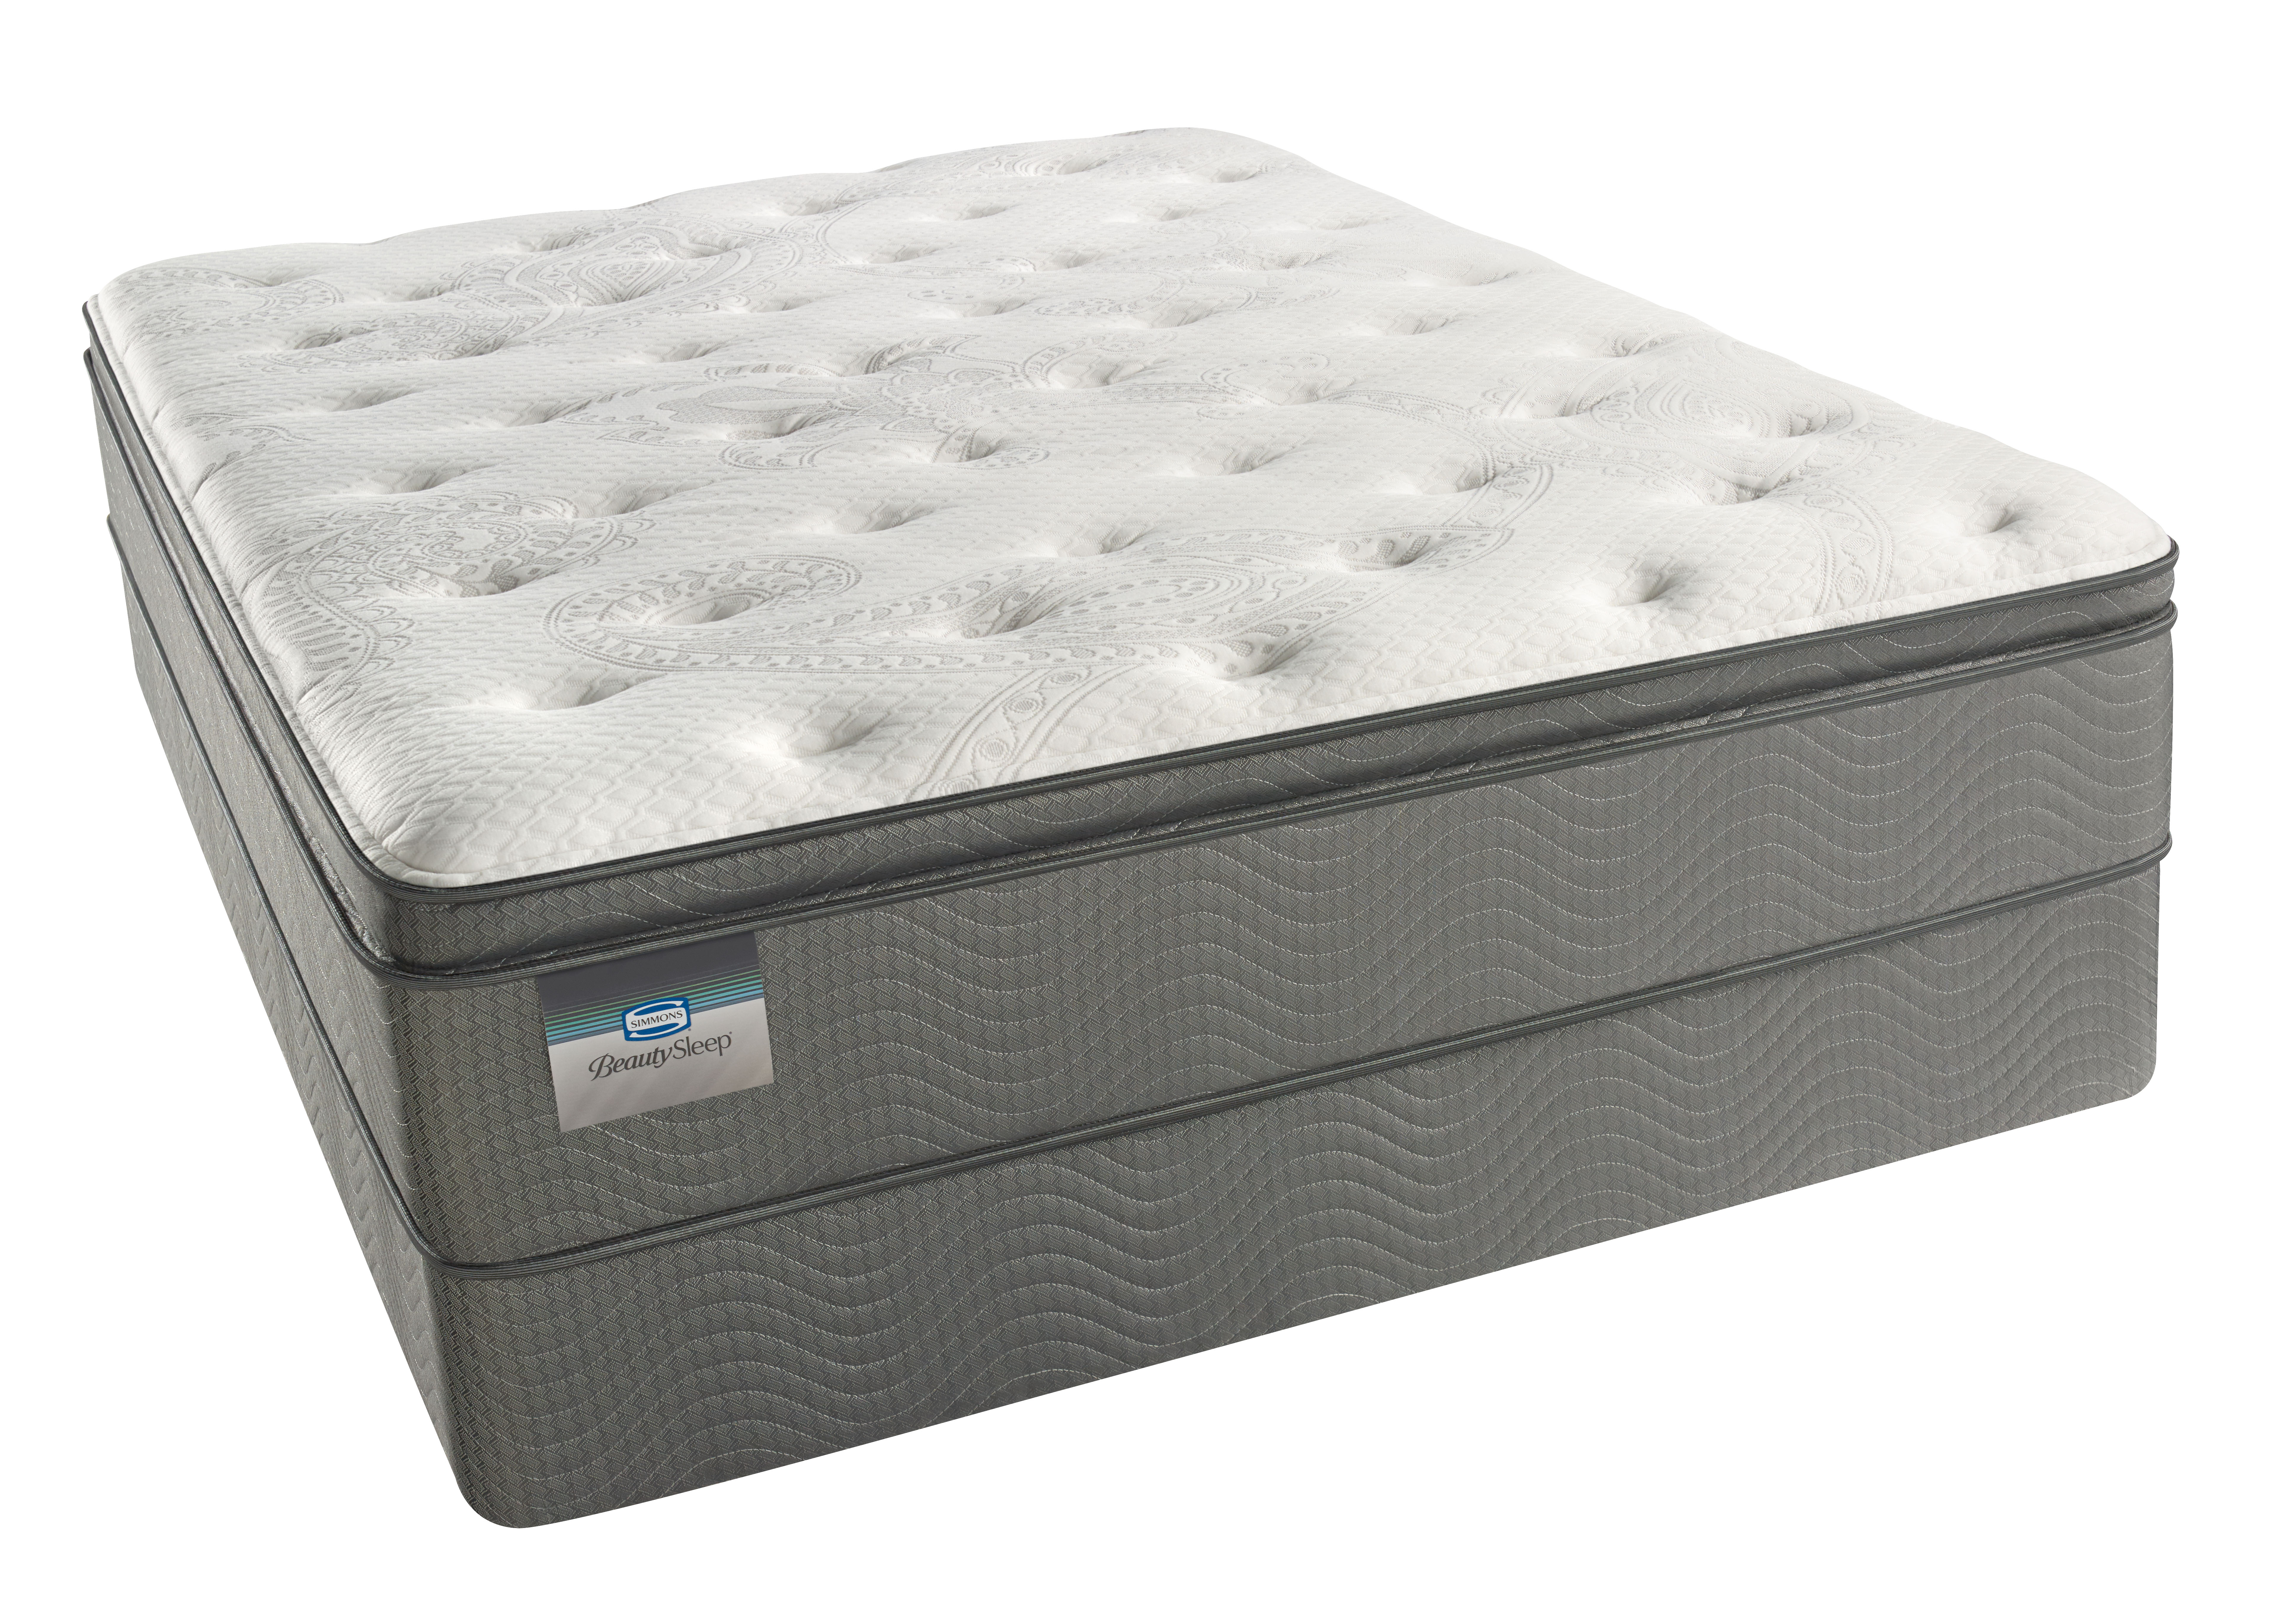 Empress Luxury Firm Pillow Top